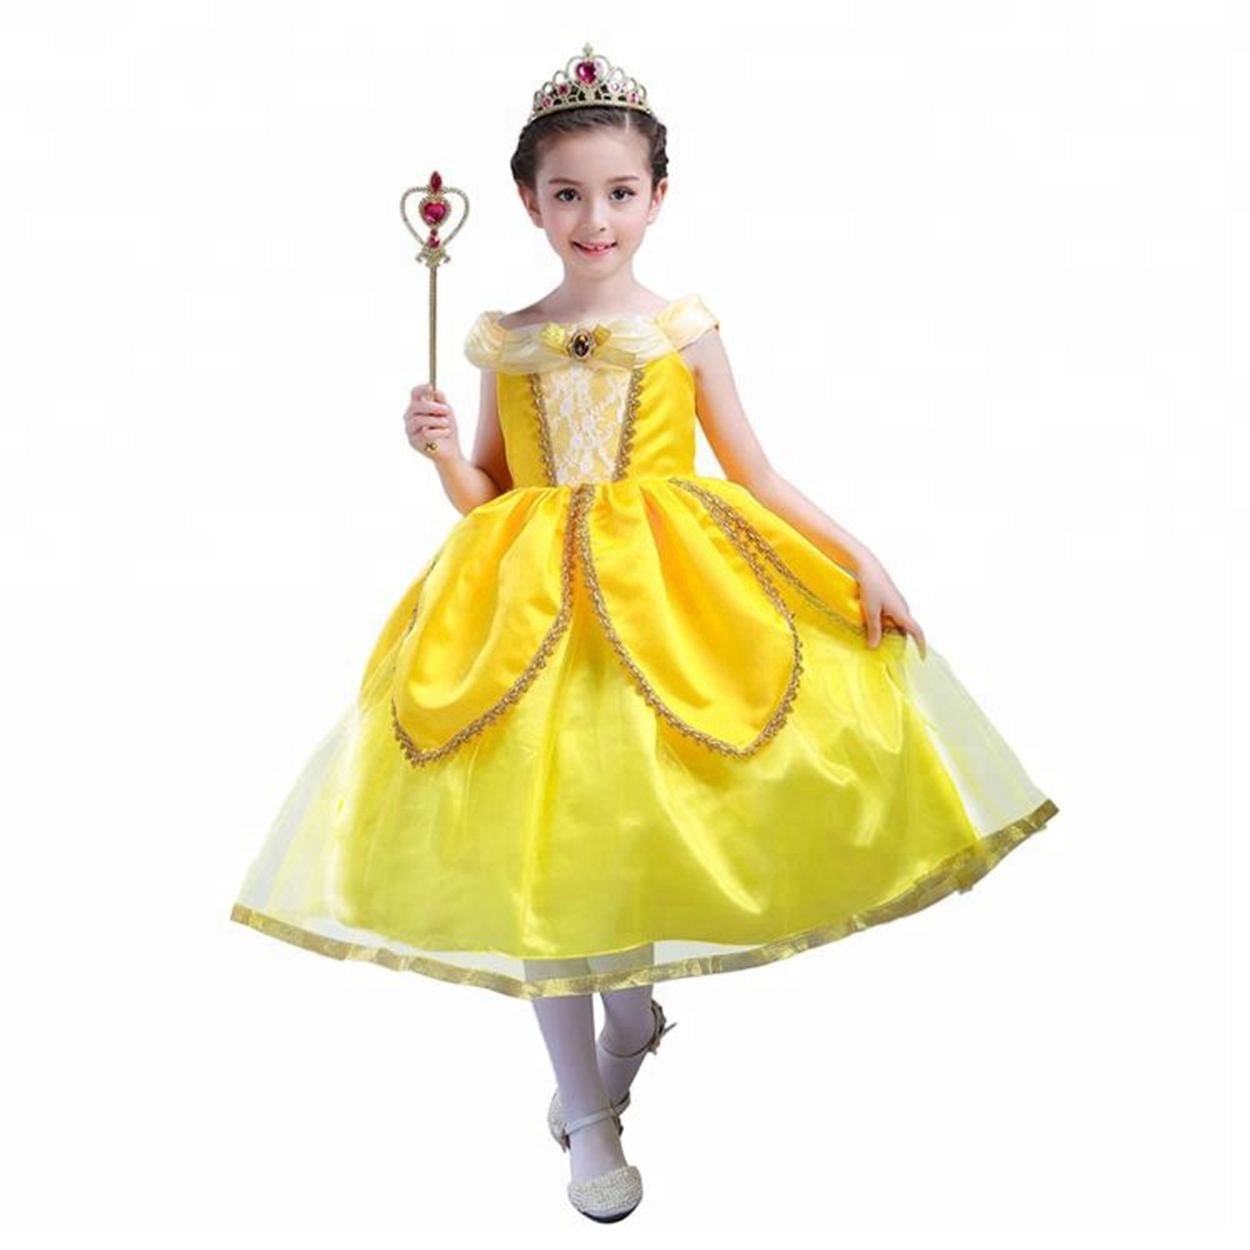 Princess Belle Costume Beauty And The Beast Dresses Girls Party